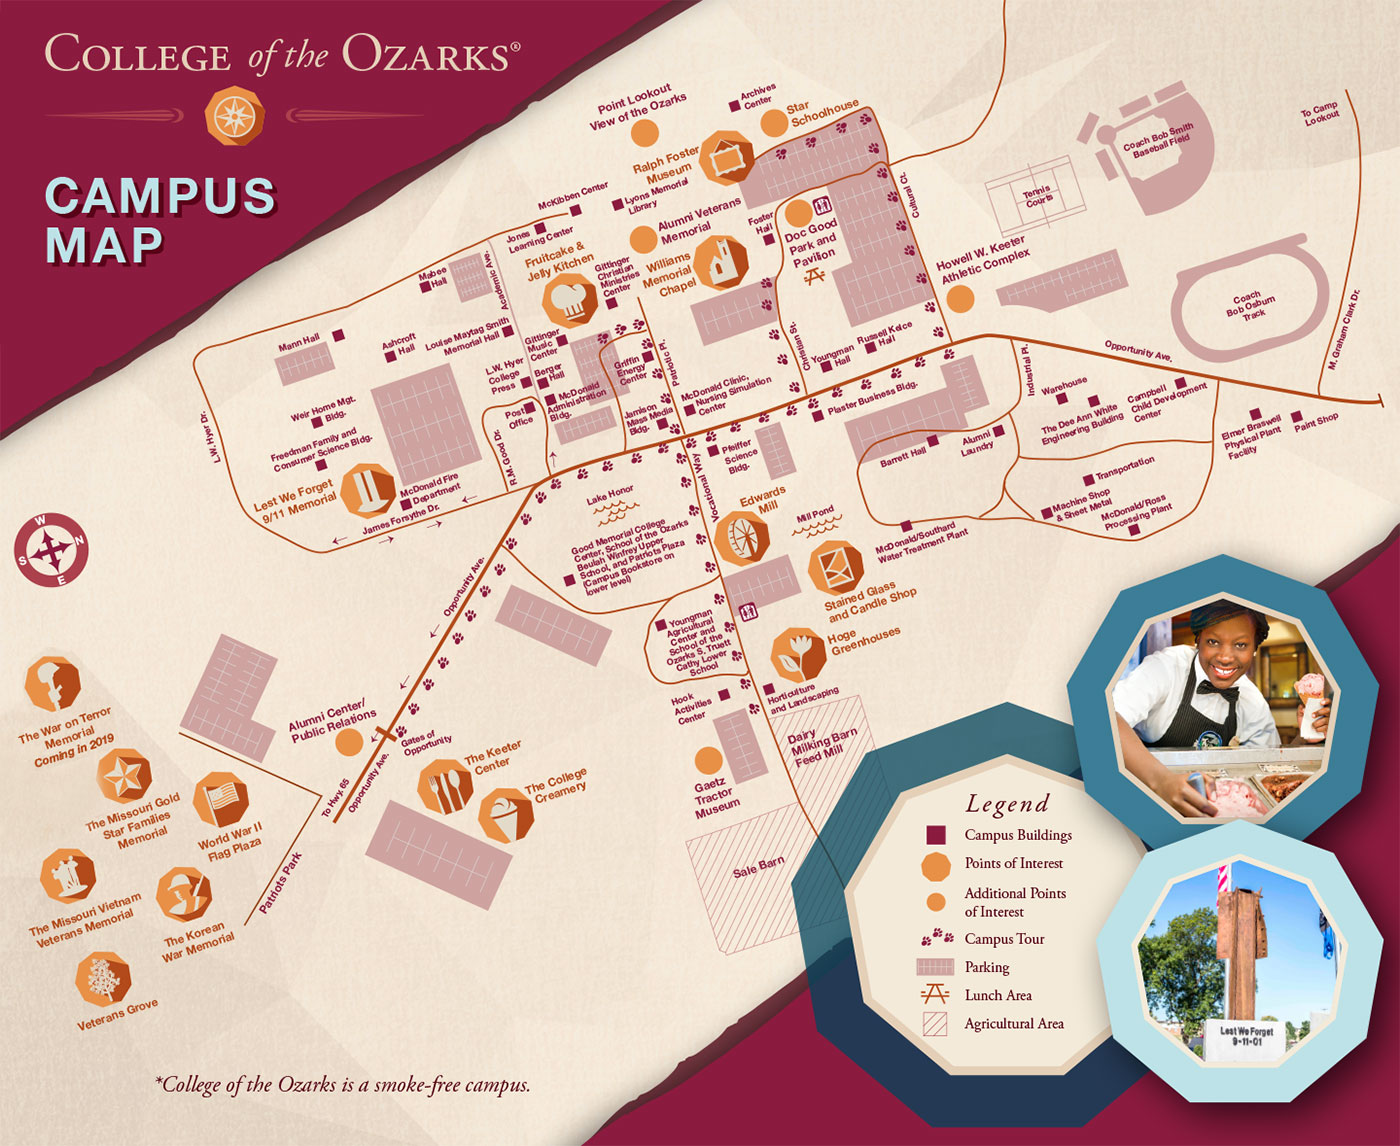 College of the Ozarks full campus map